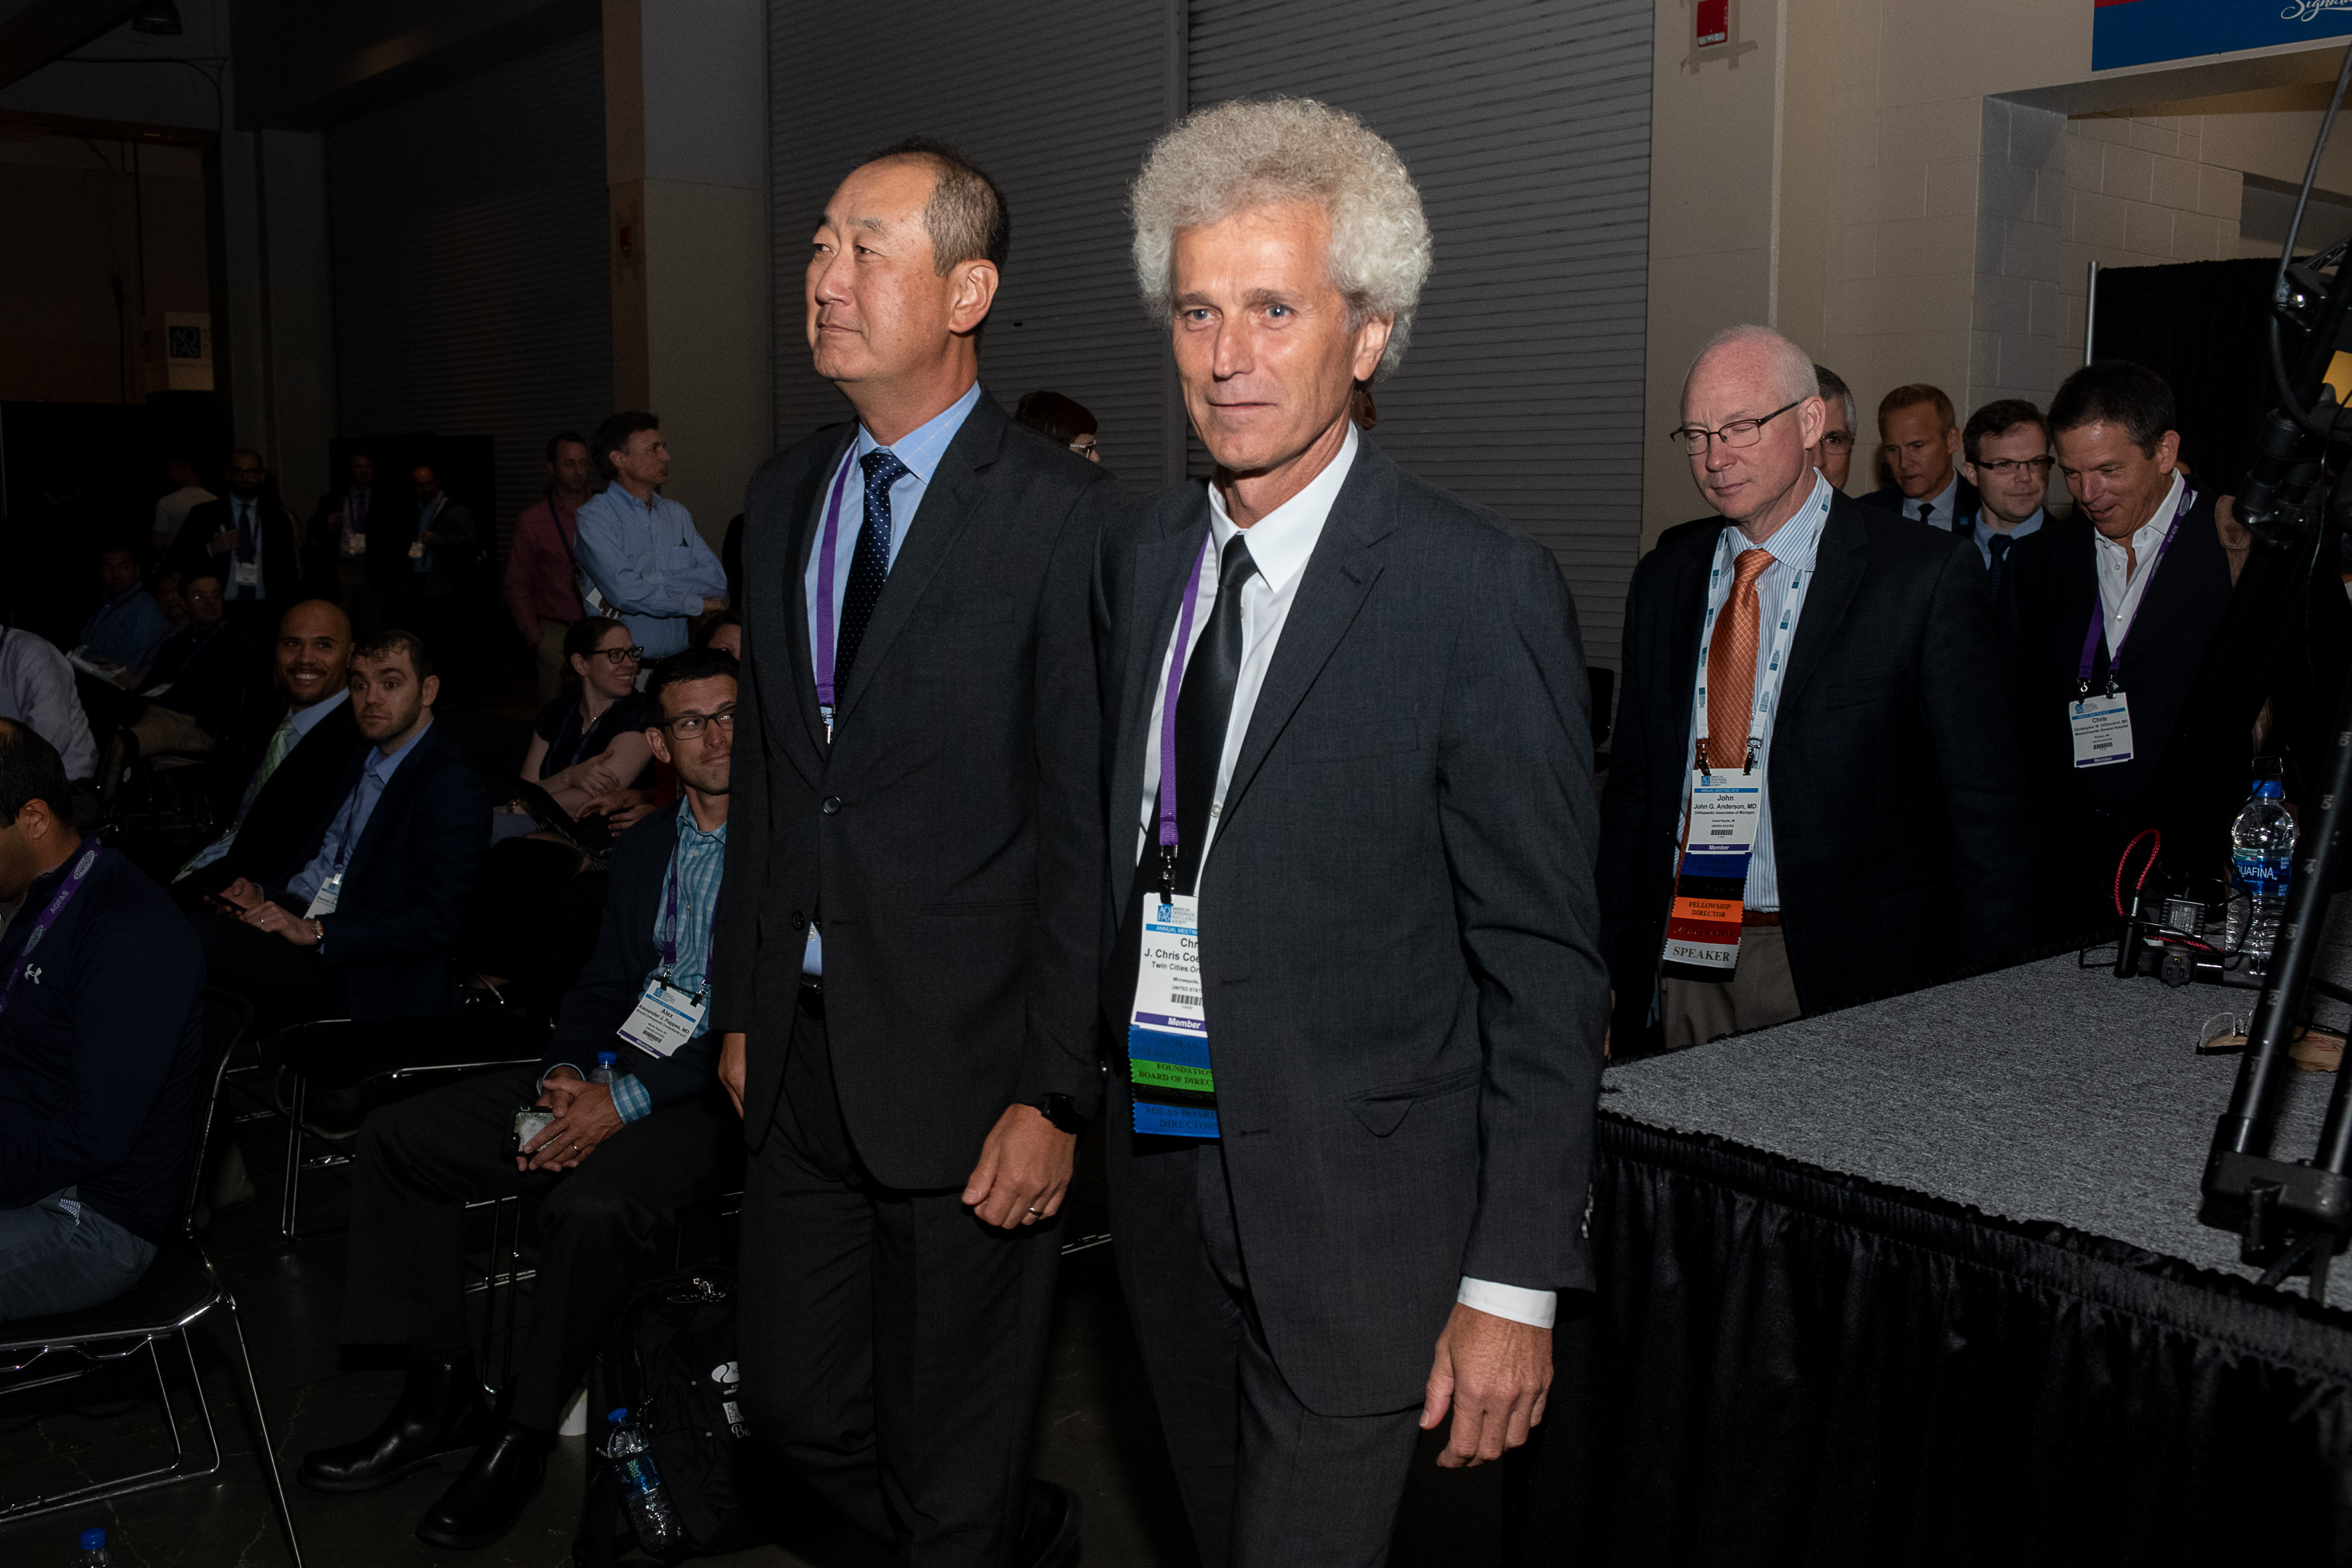 Thomas H. Lee MD and J. Chris Coetzee, MD